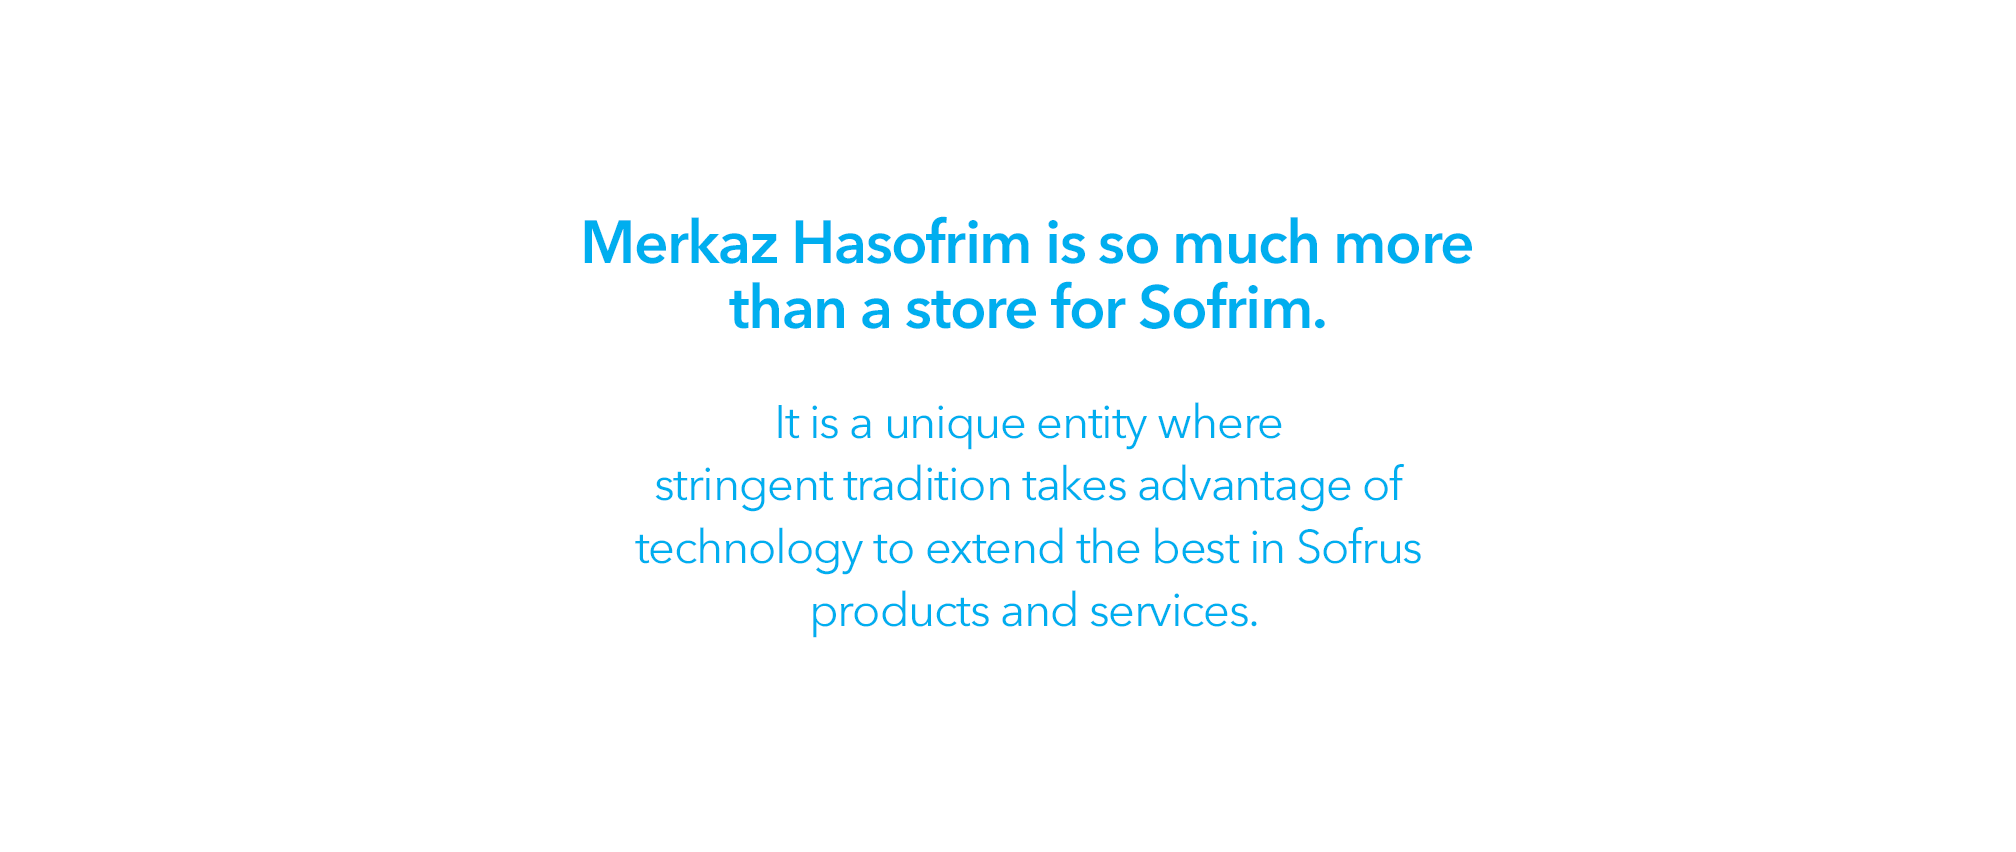 Merkaz Hasofrim is so much more than just a store for Sofrim. It is a unique entity where stringent tradition takes advantage of technology to extend the best in Sofrus products and services.